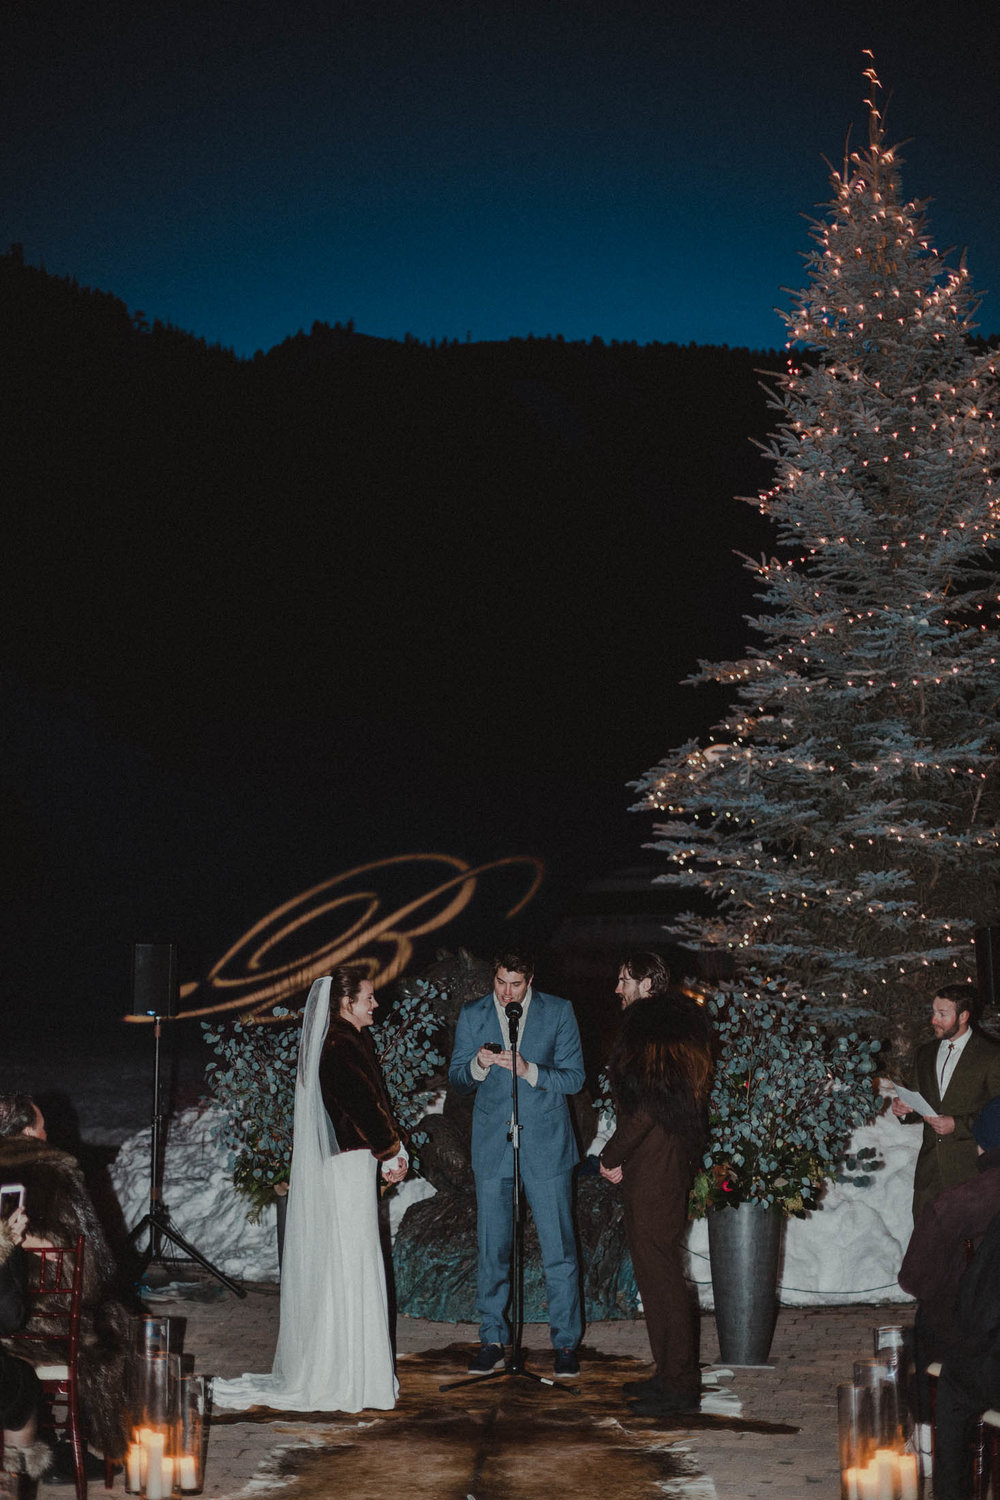 k_B_sunvalleywinterwedding-112.jpg